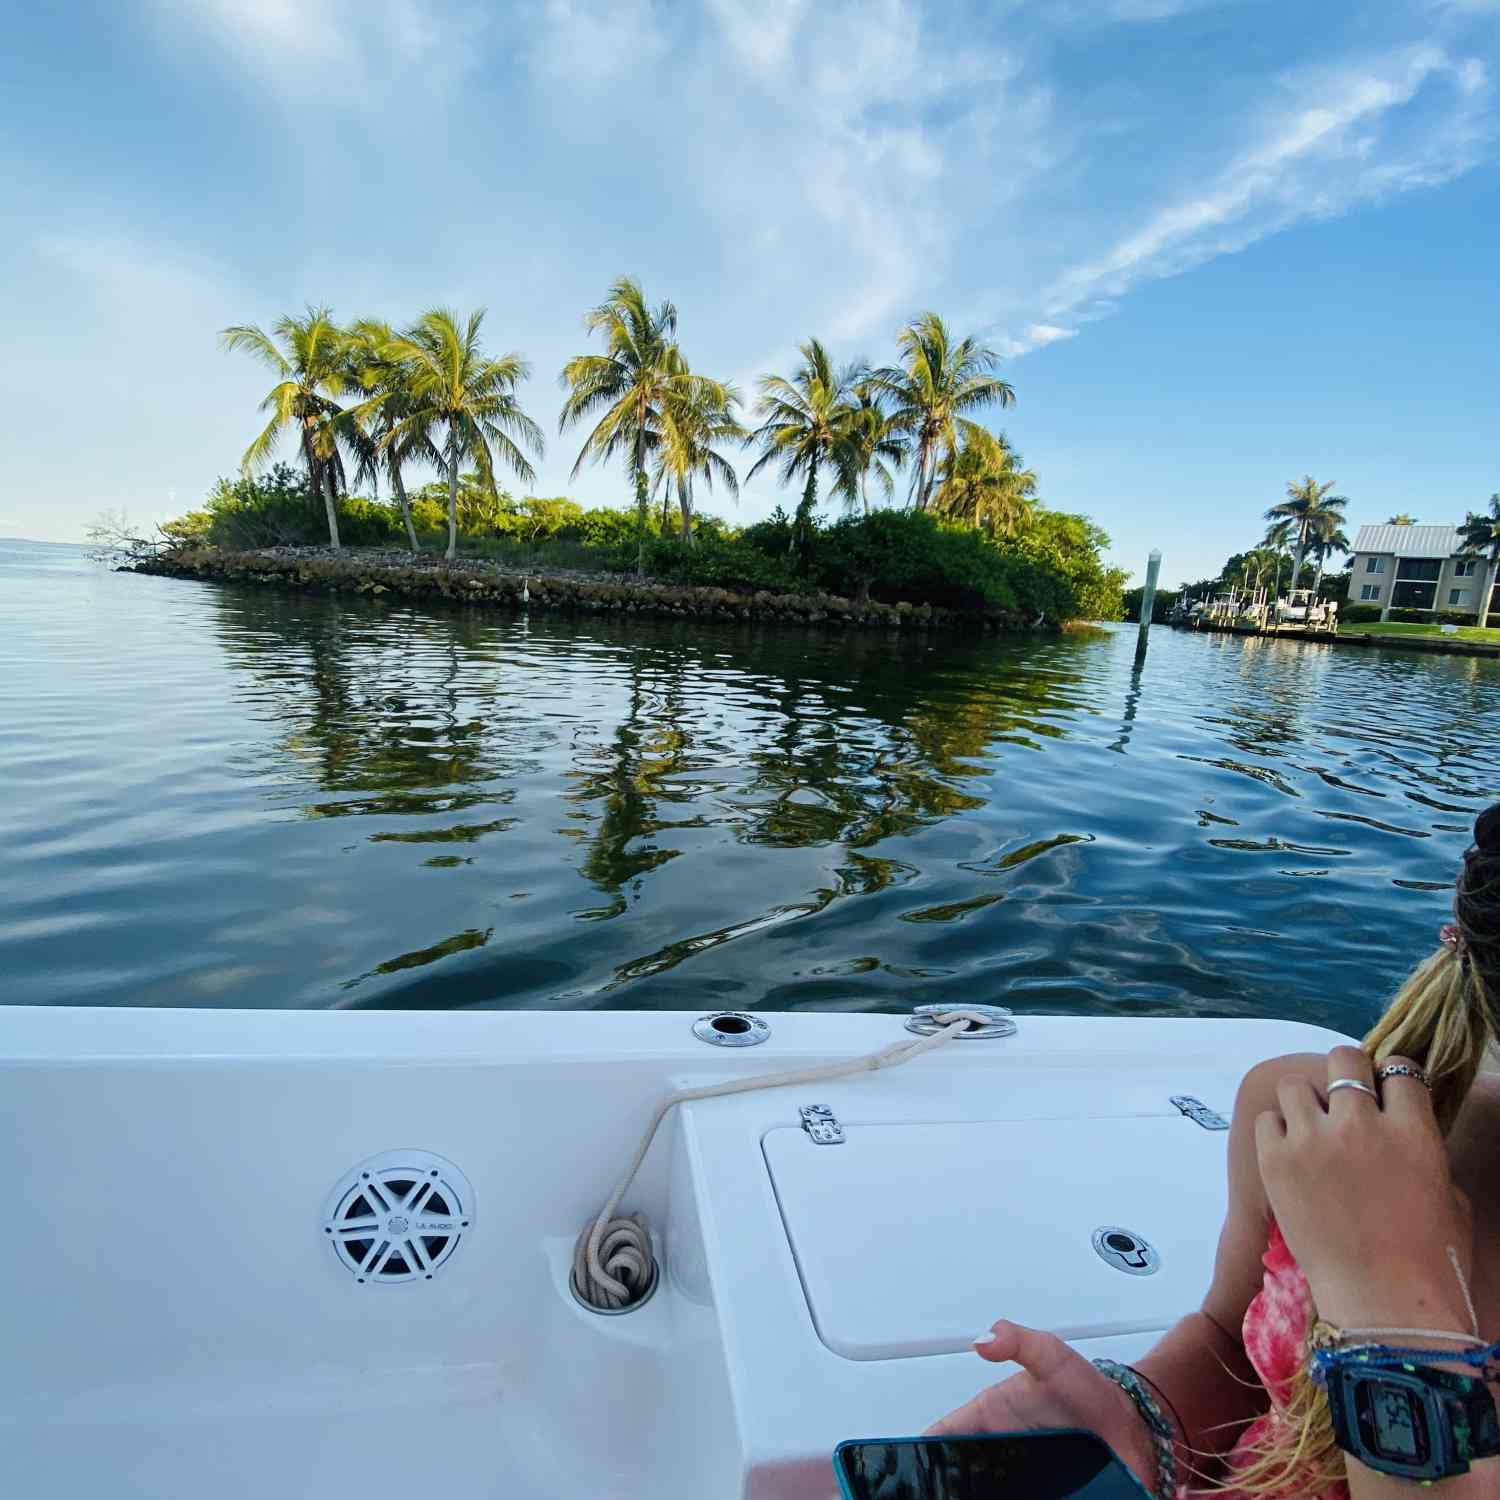 Title: Slice of Paradise - On board their Sportsman Tournament 234 Bay Boat - Location: Captiva Island. Participating in the Photo Contest #SportsmanJuly2020